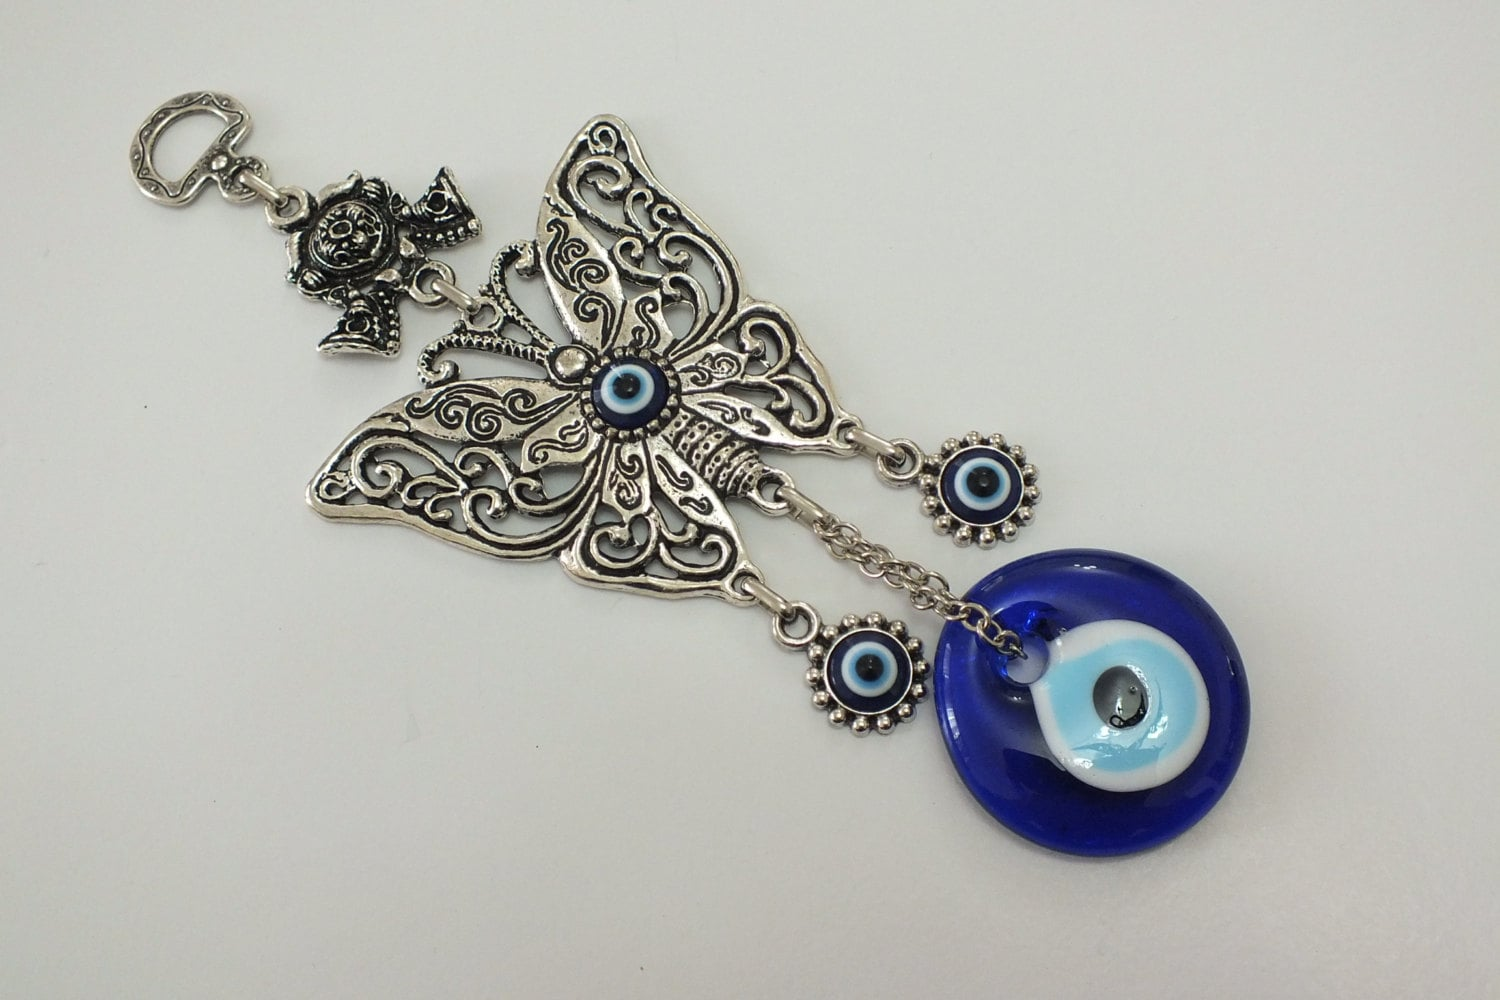 Evil Eye Decoration Wall Hanging : Butterfly evil eye wall decoration hanging